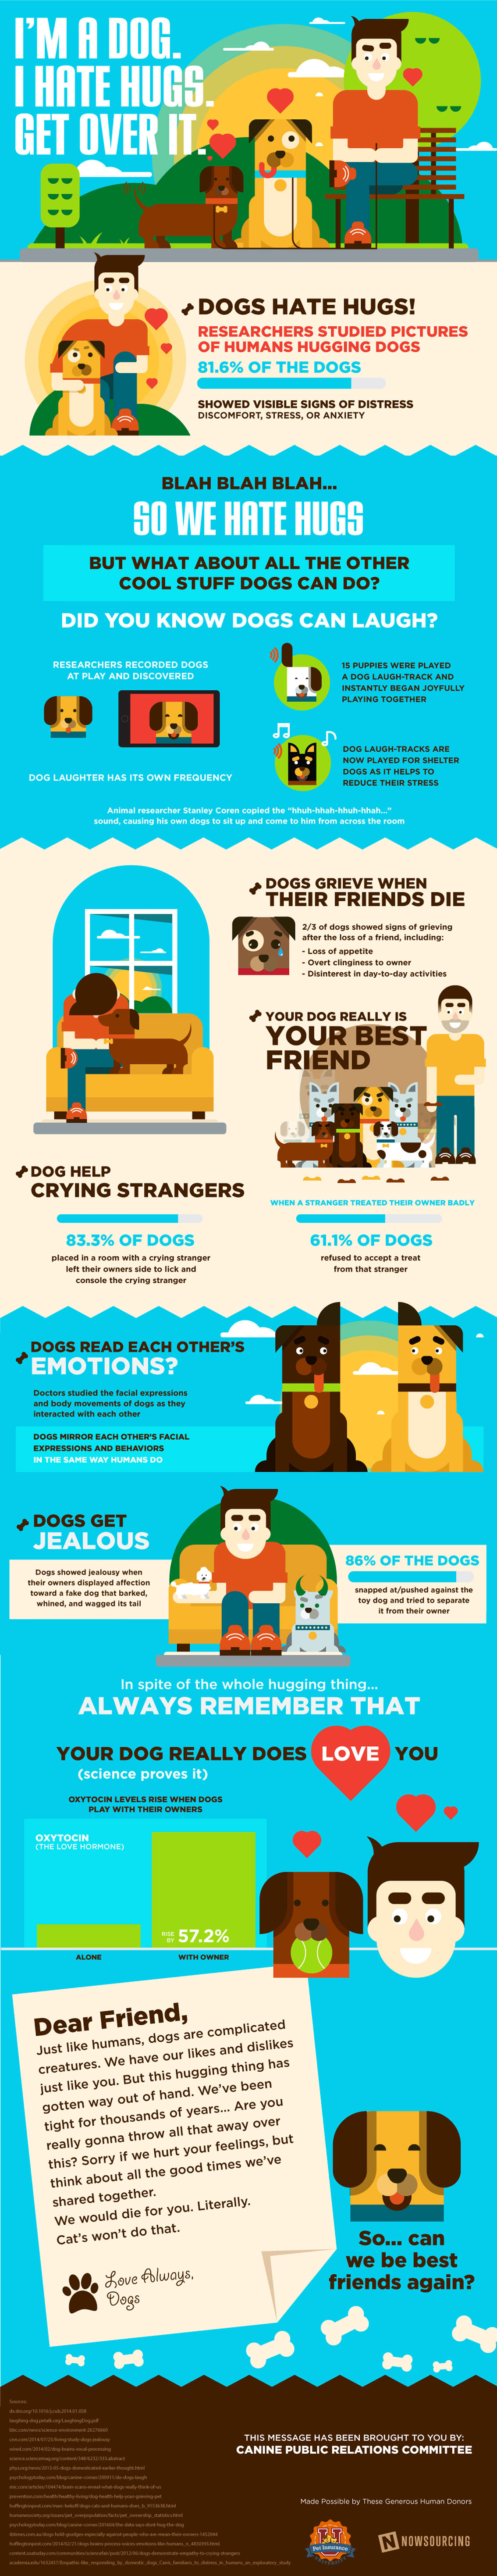 Do Dogs Like to be Hugged - Pet Infographic